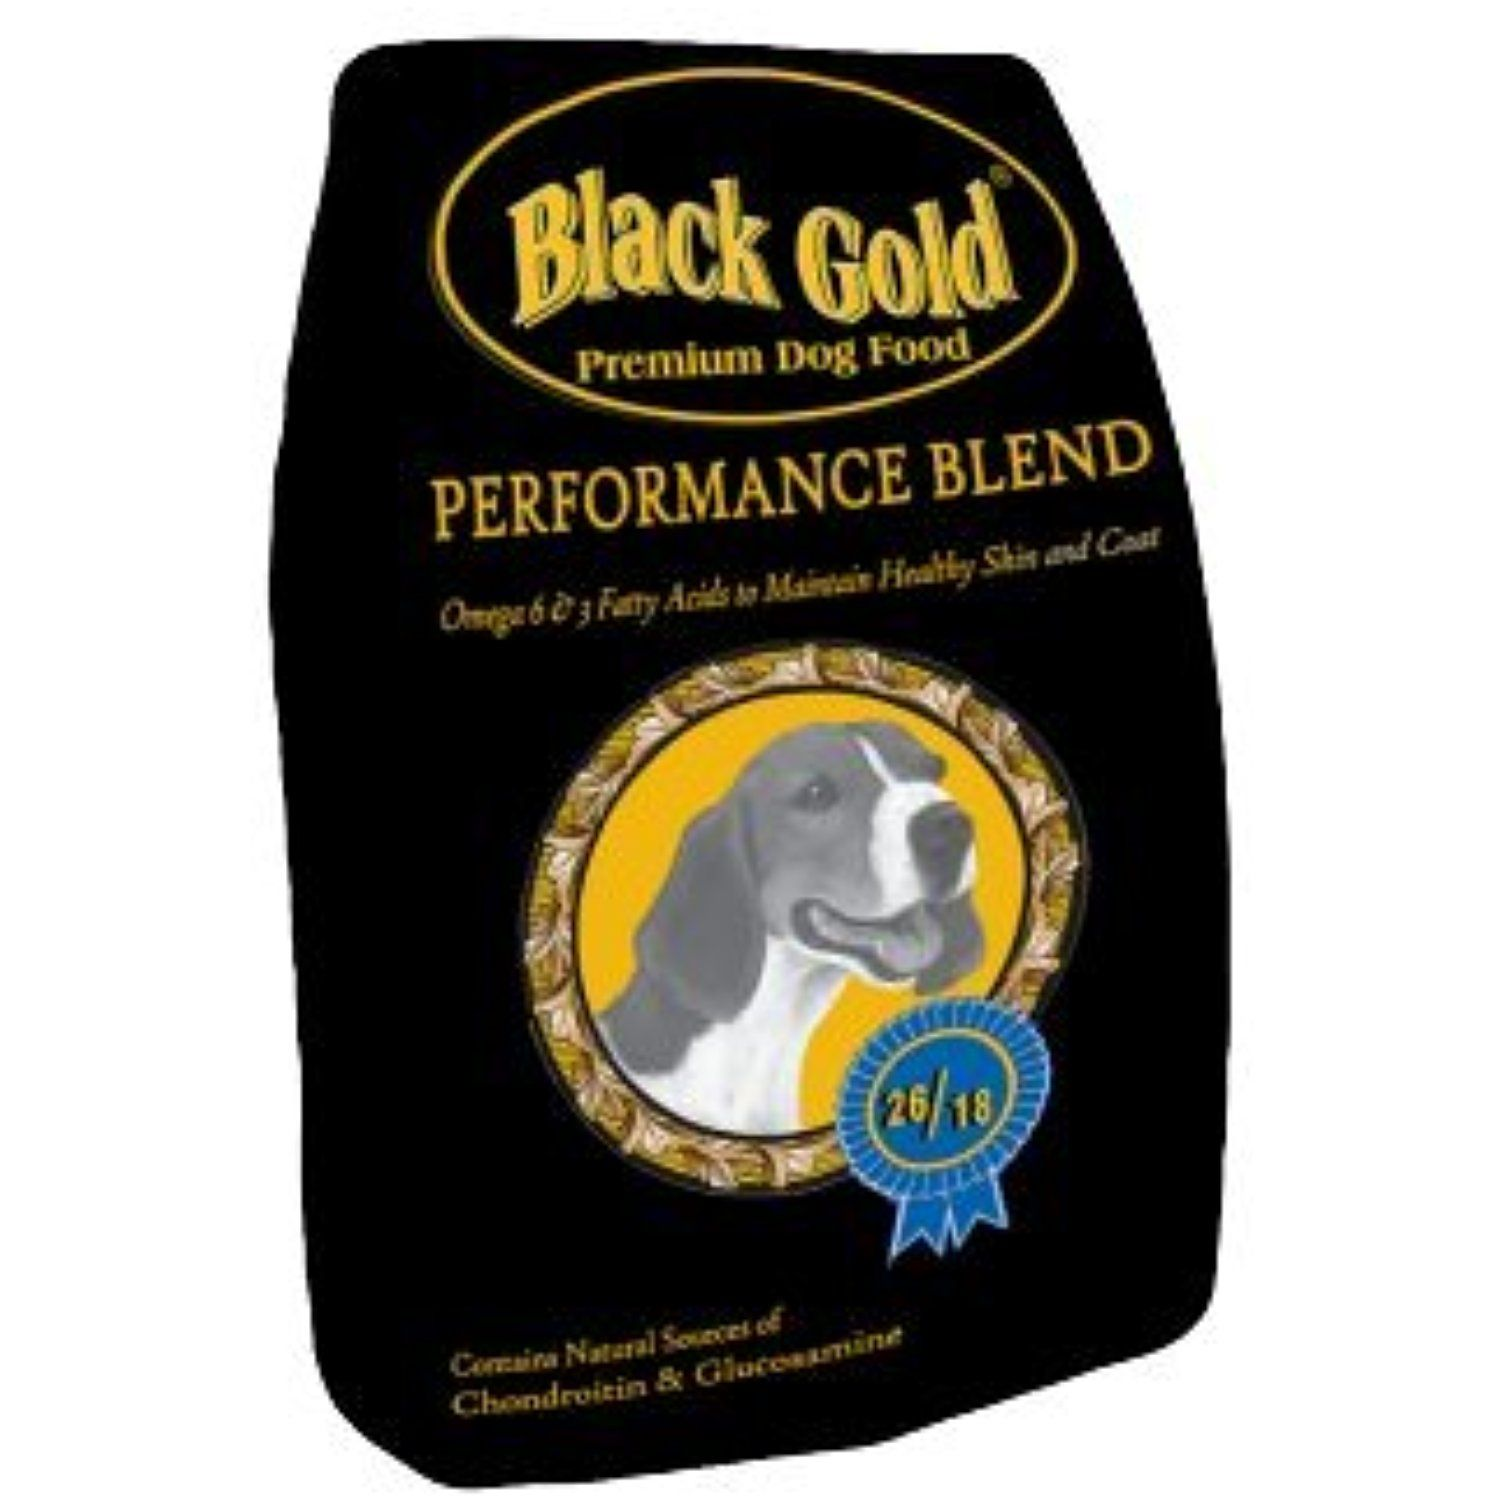 Download Black Gold Performance Blend Dog Food 50 Lb Bag The Details Can Be Found By Clicking On The Image This Is Dog Food Recipes Dry Dog Food Premium Dog Food